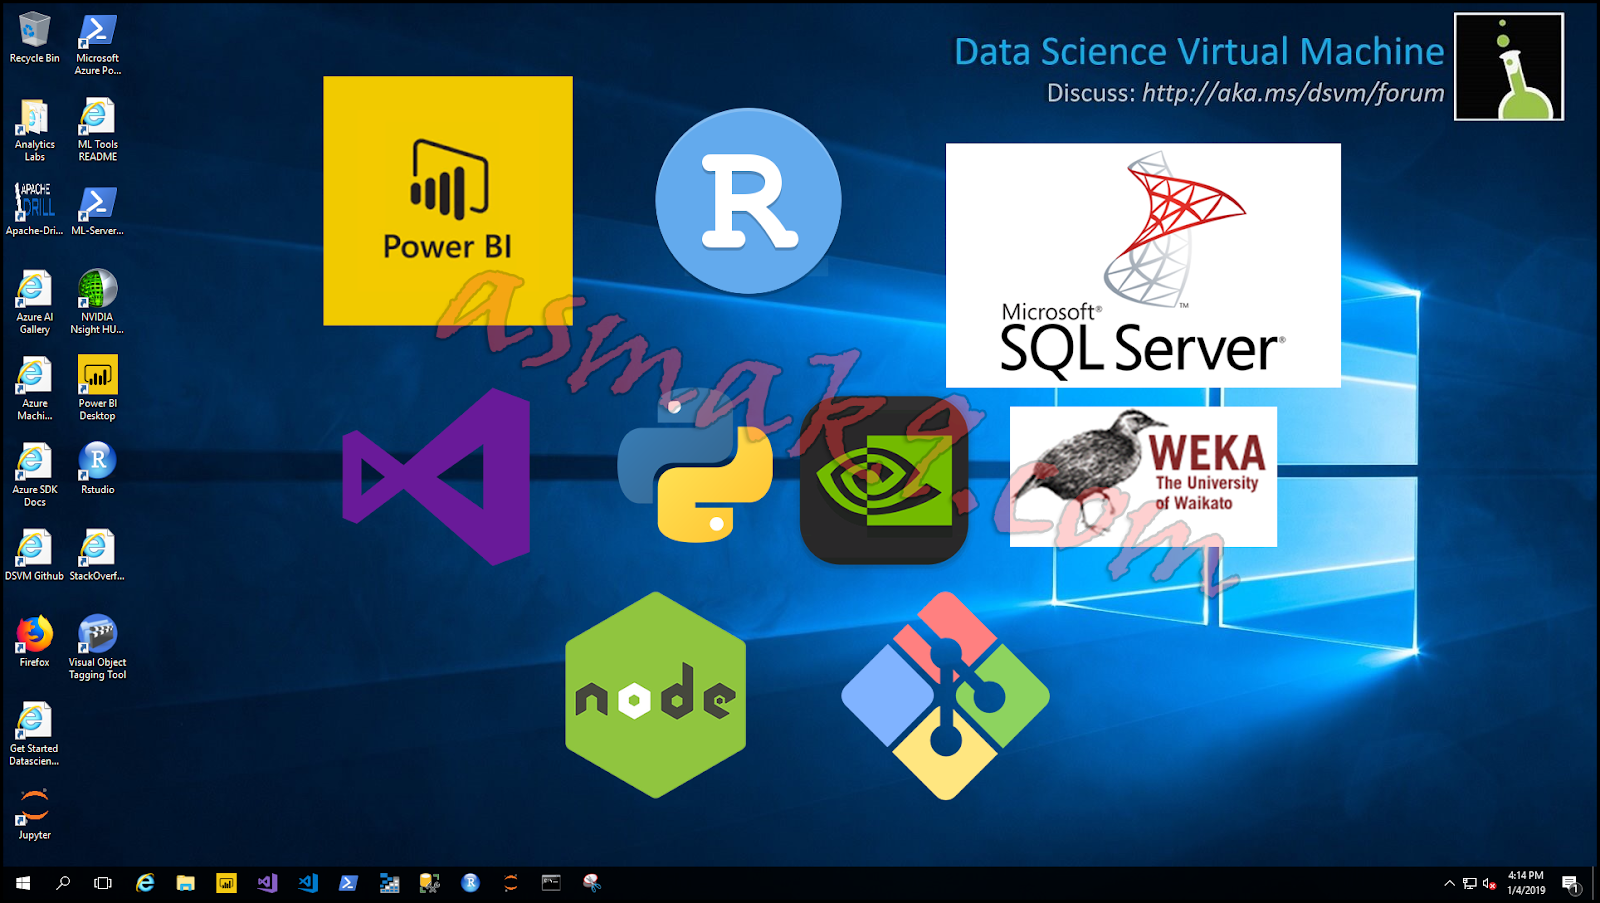 Microsoft Azure: Remote Desktop Connection to Data Science Windows